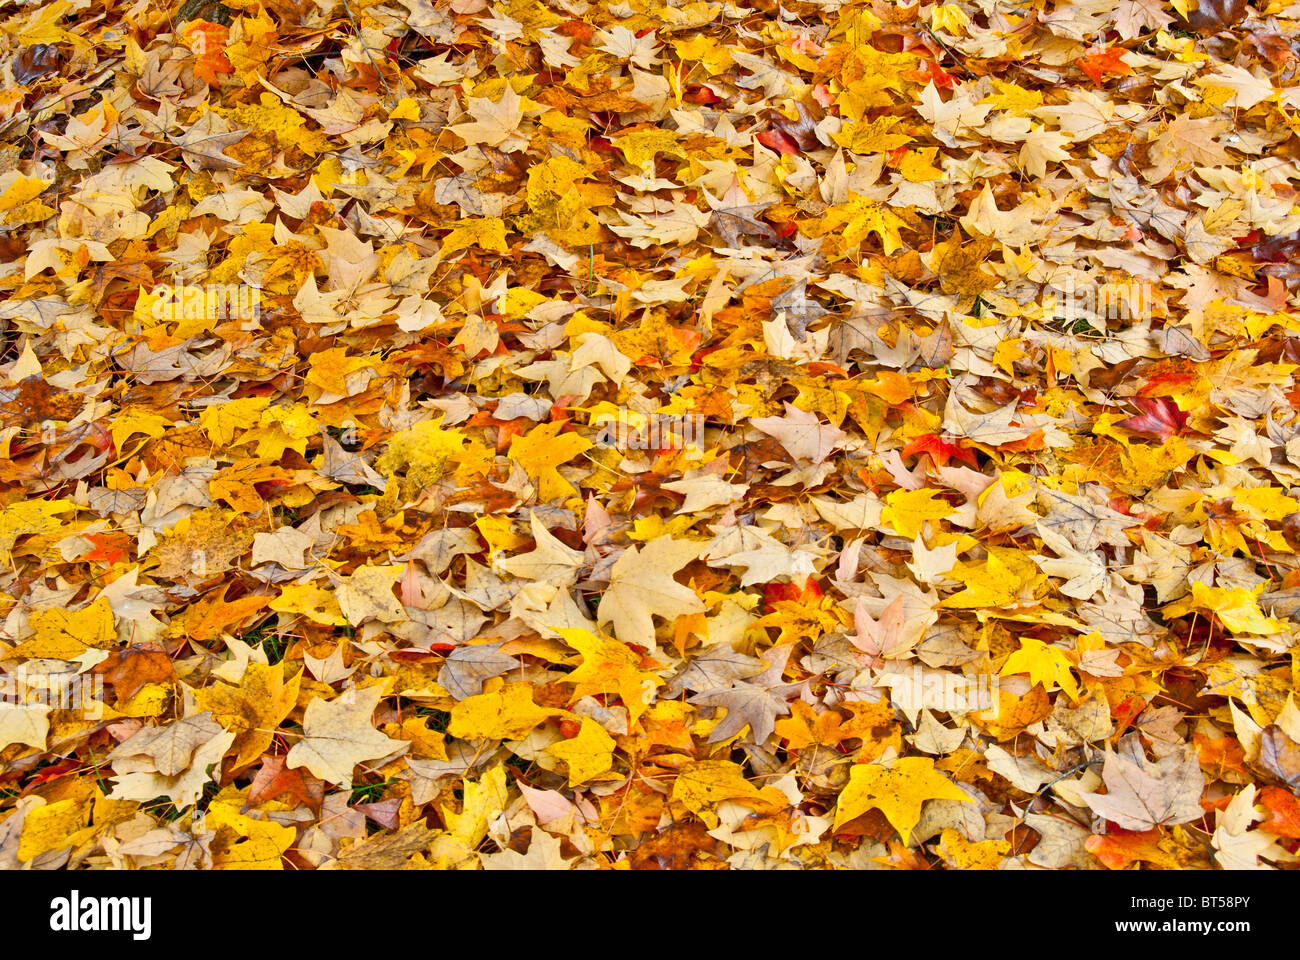 Carpet of autumn leaves in North Carolina, USA - Stock Image